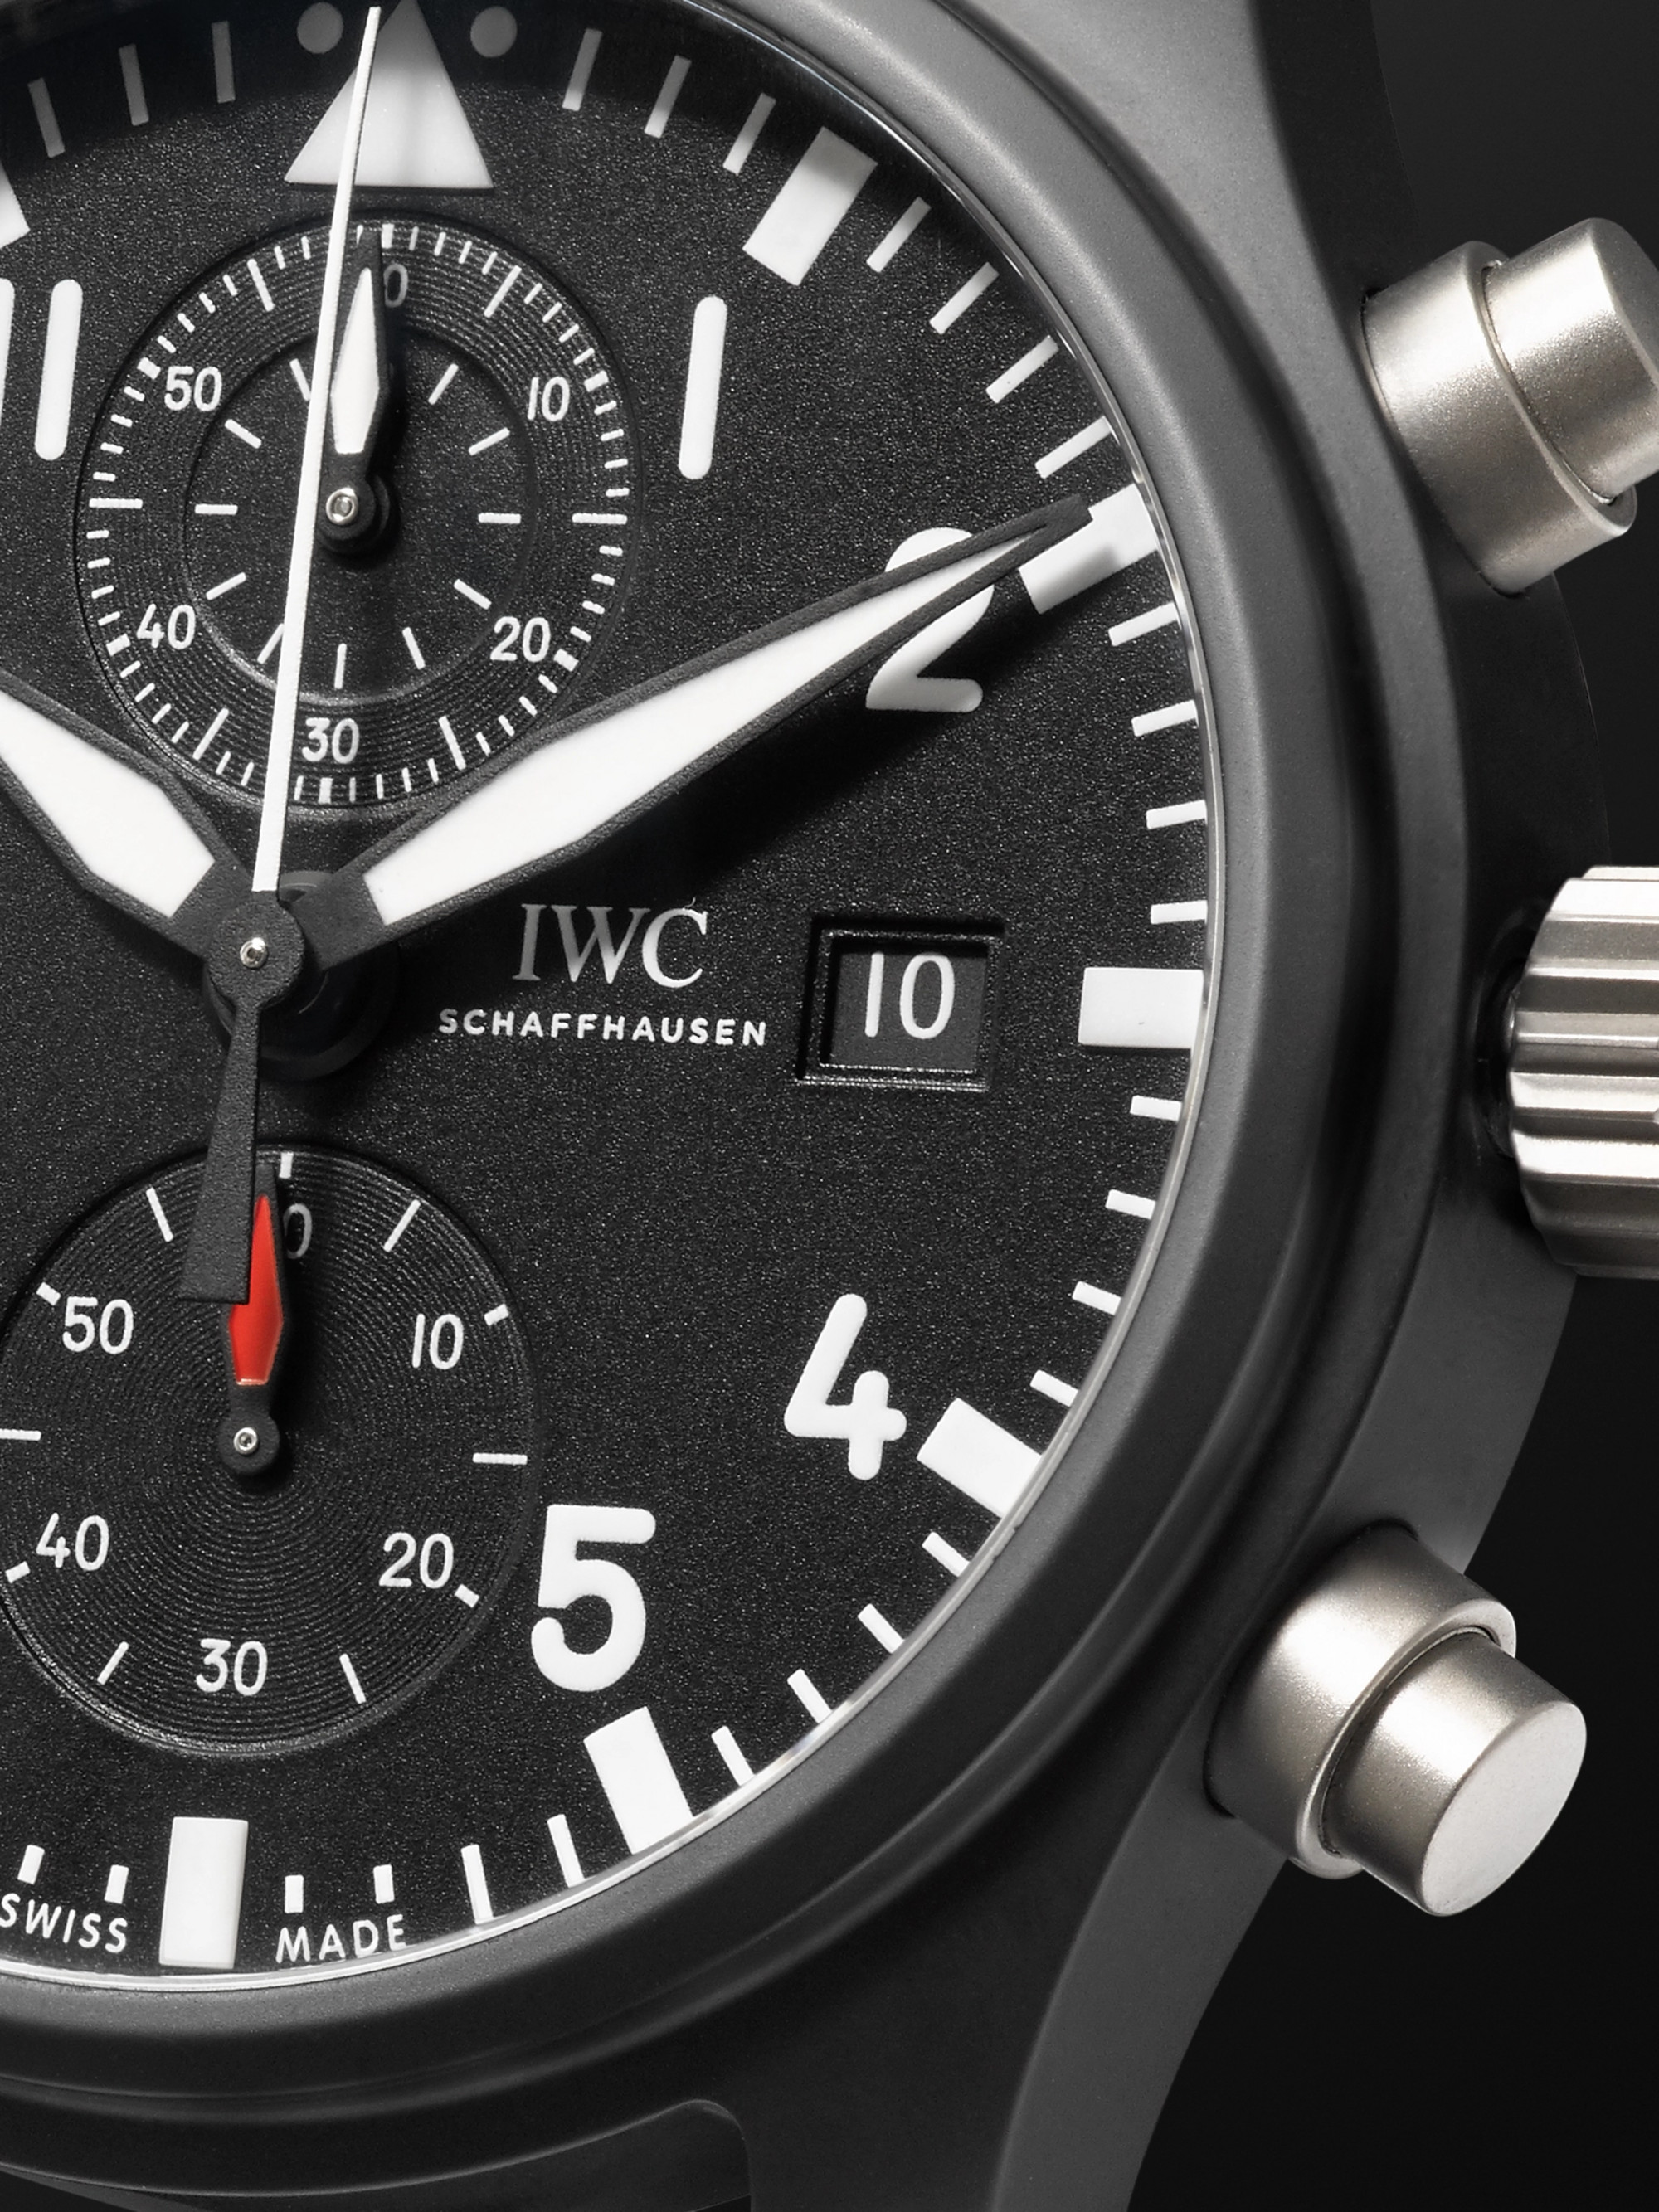 IWC SCHAFFHAUSEN Pilot's TOP GUN Chronograph 44mm Ceramic and Leather Watch